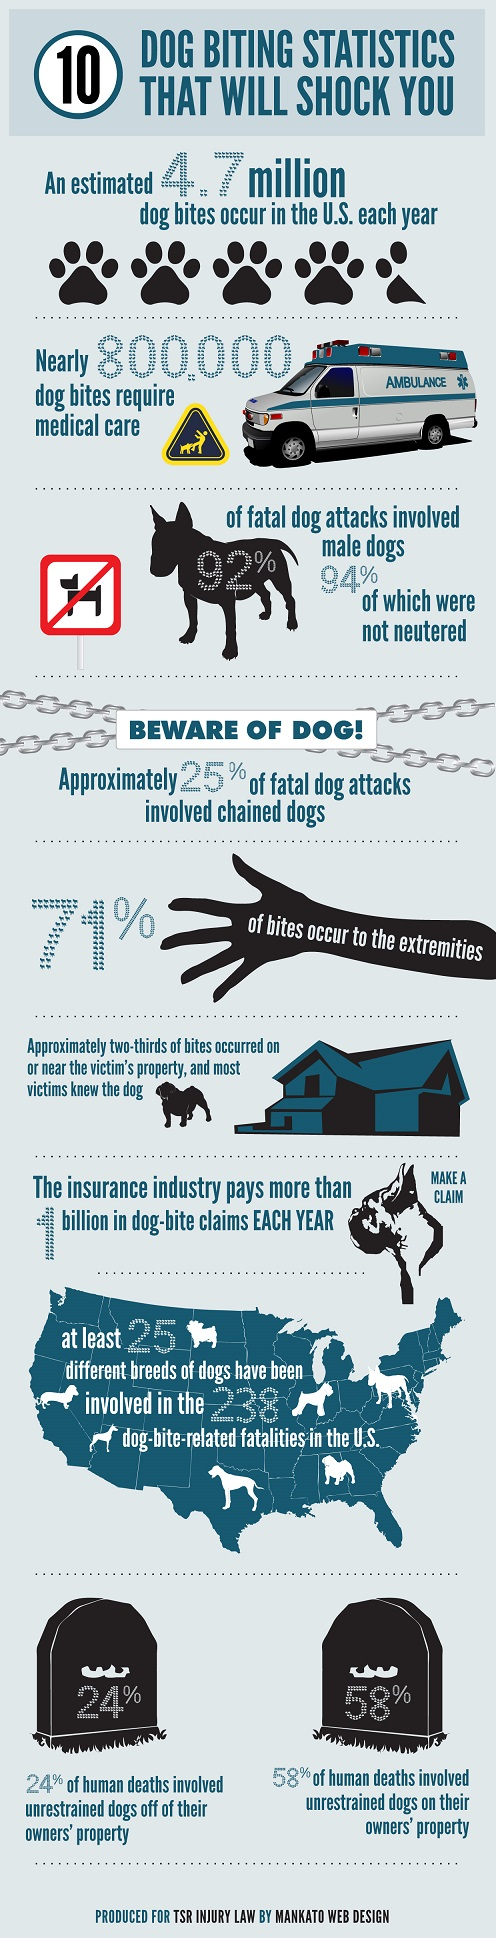 10 Dog Biting Statistics That Will Shock You